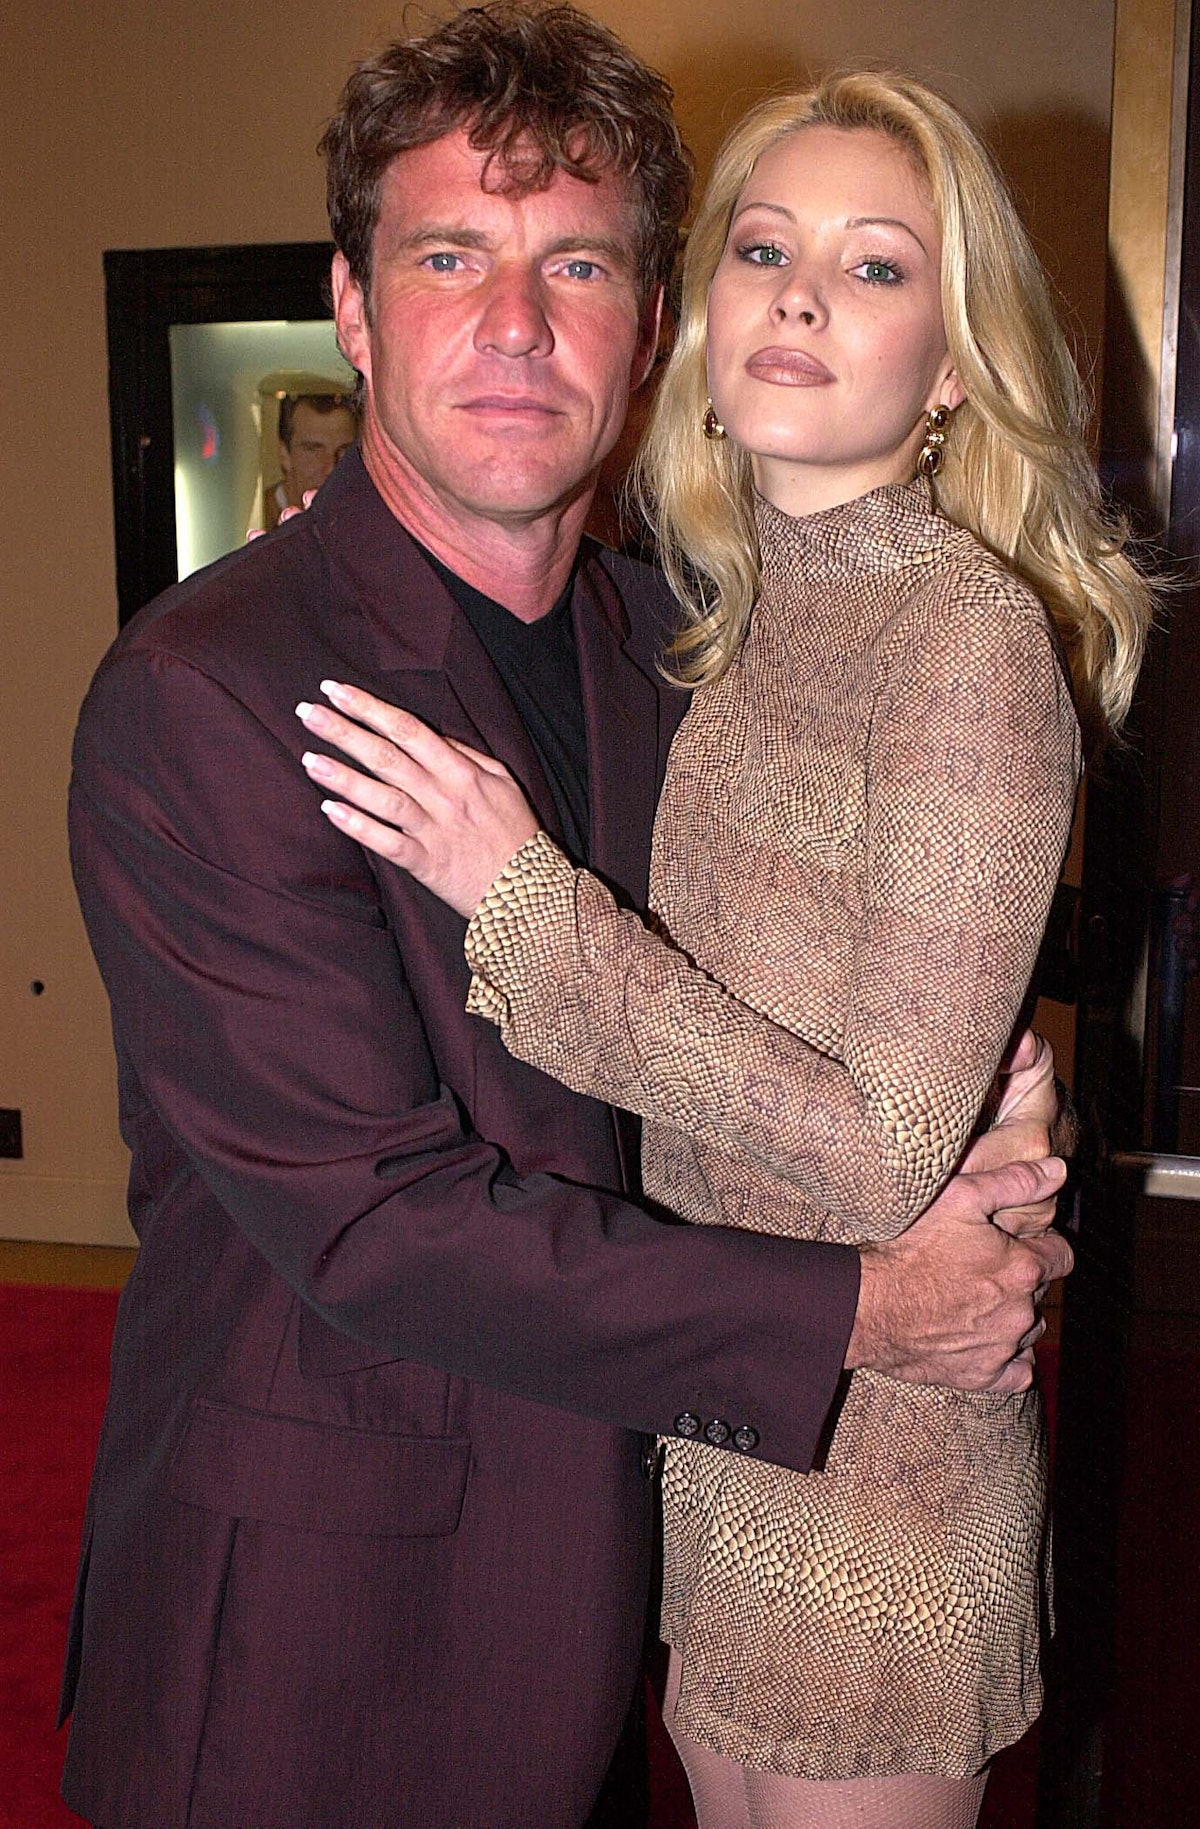 Dennis Quaid and Shanna Moakler during HBO Dinner With Friends. (Photo by Jeff Kravitz/FilmMagic)